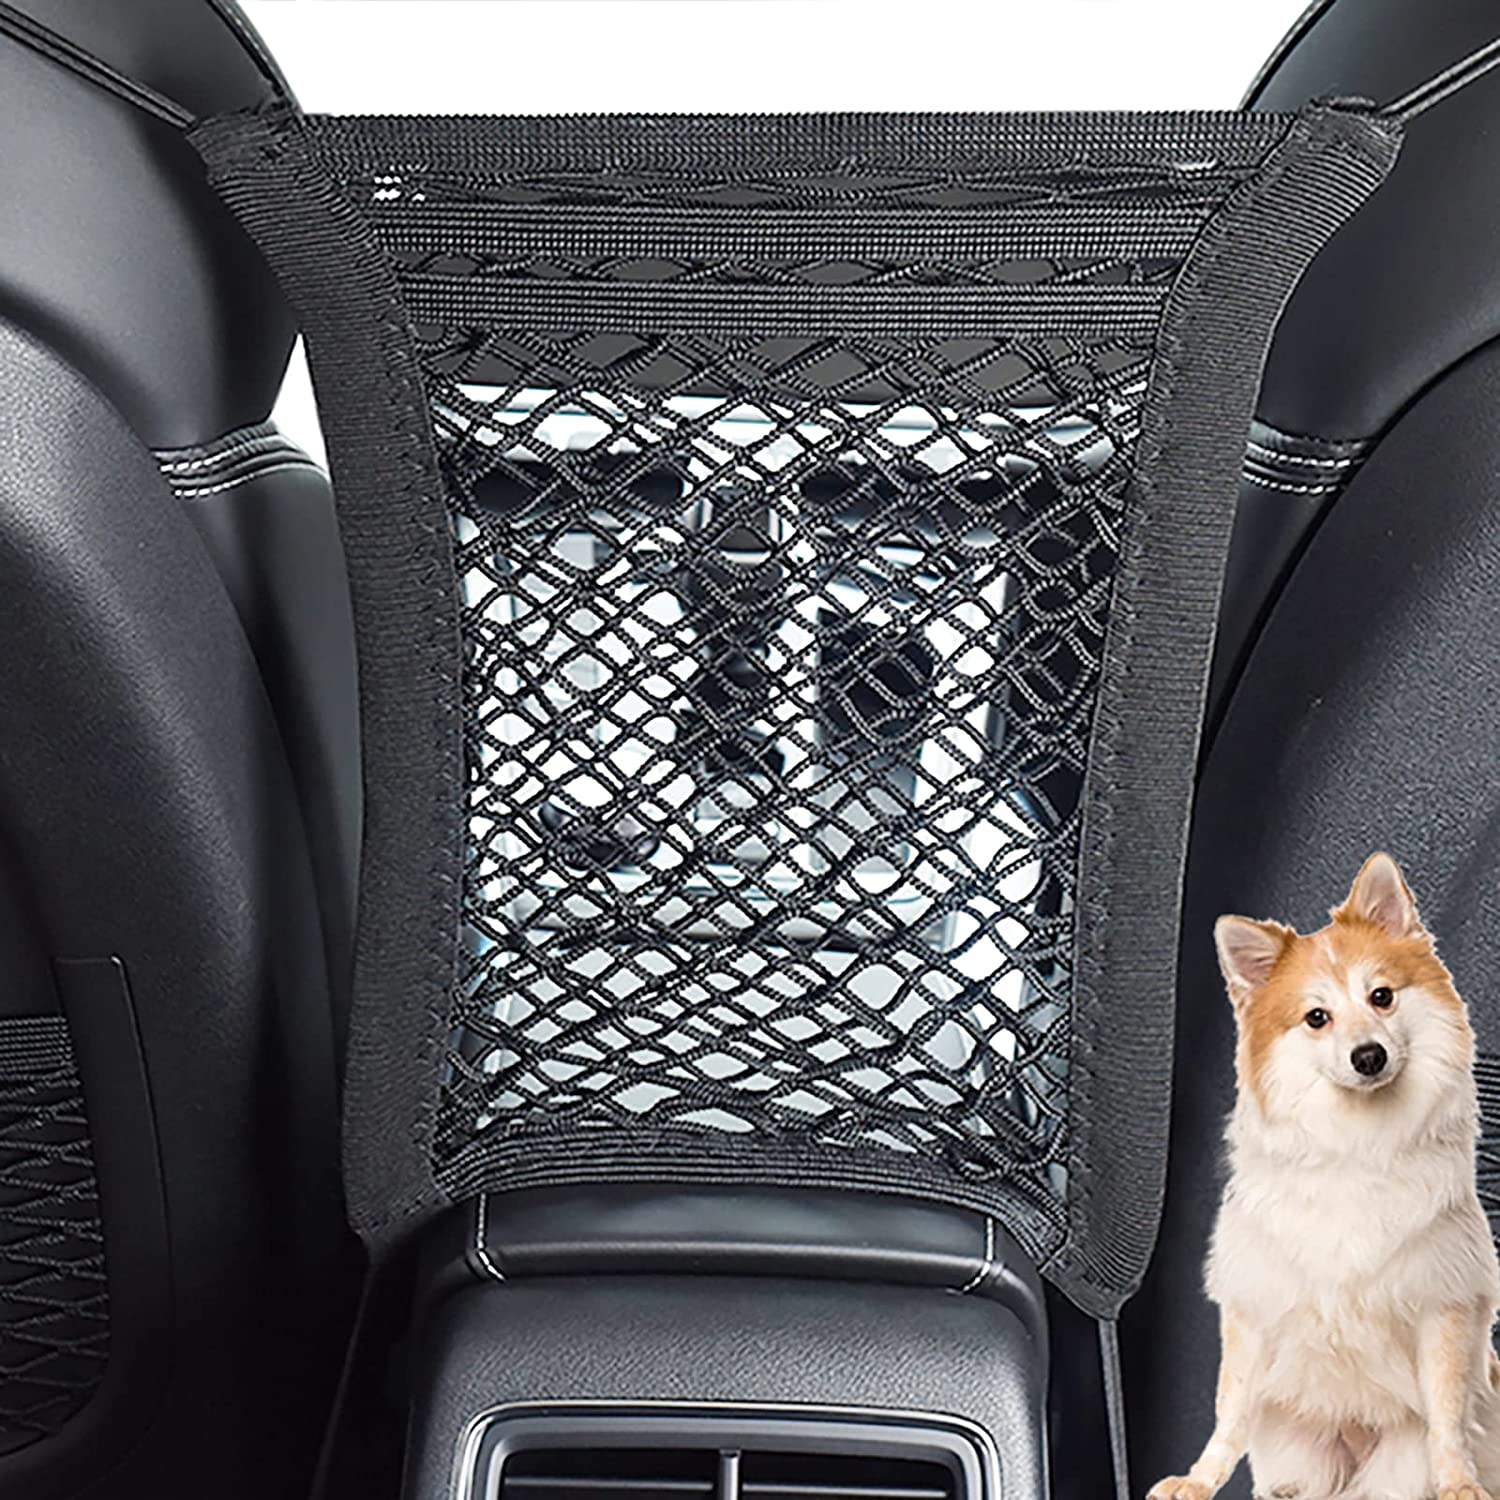 Bestdoggo Car Dog Barrier for Dogs Net Barrier 3 Layers Car Mesh Organizer, Car Divider, Dog Car Accessories, Pet Barrier, Design for Safety of Driving with Children & Pets Dog Barrier SUV(Black) : Pet Supplies